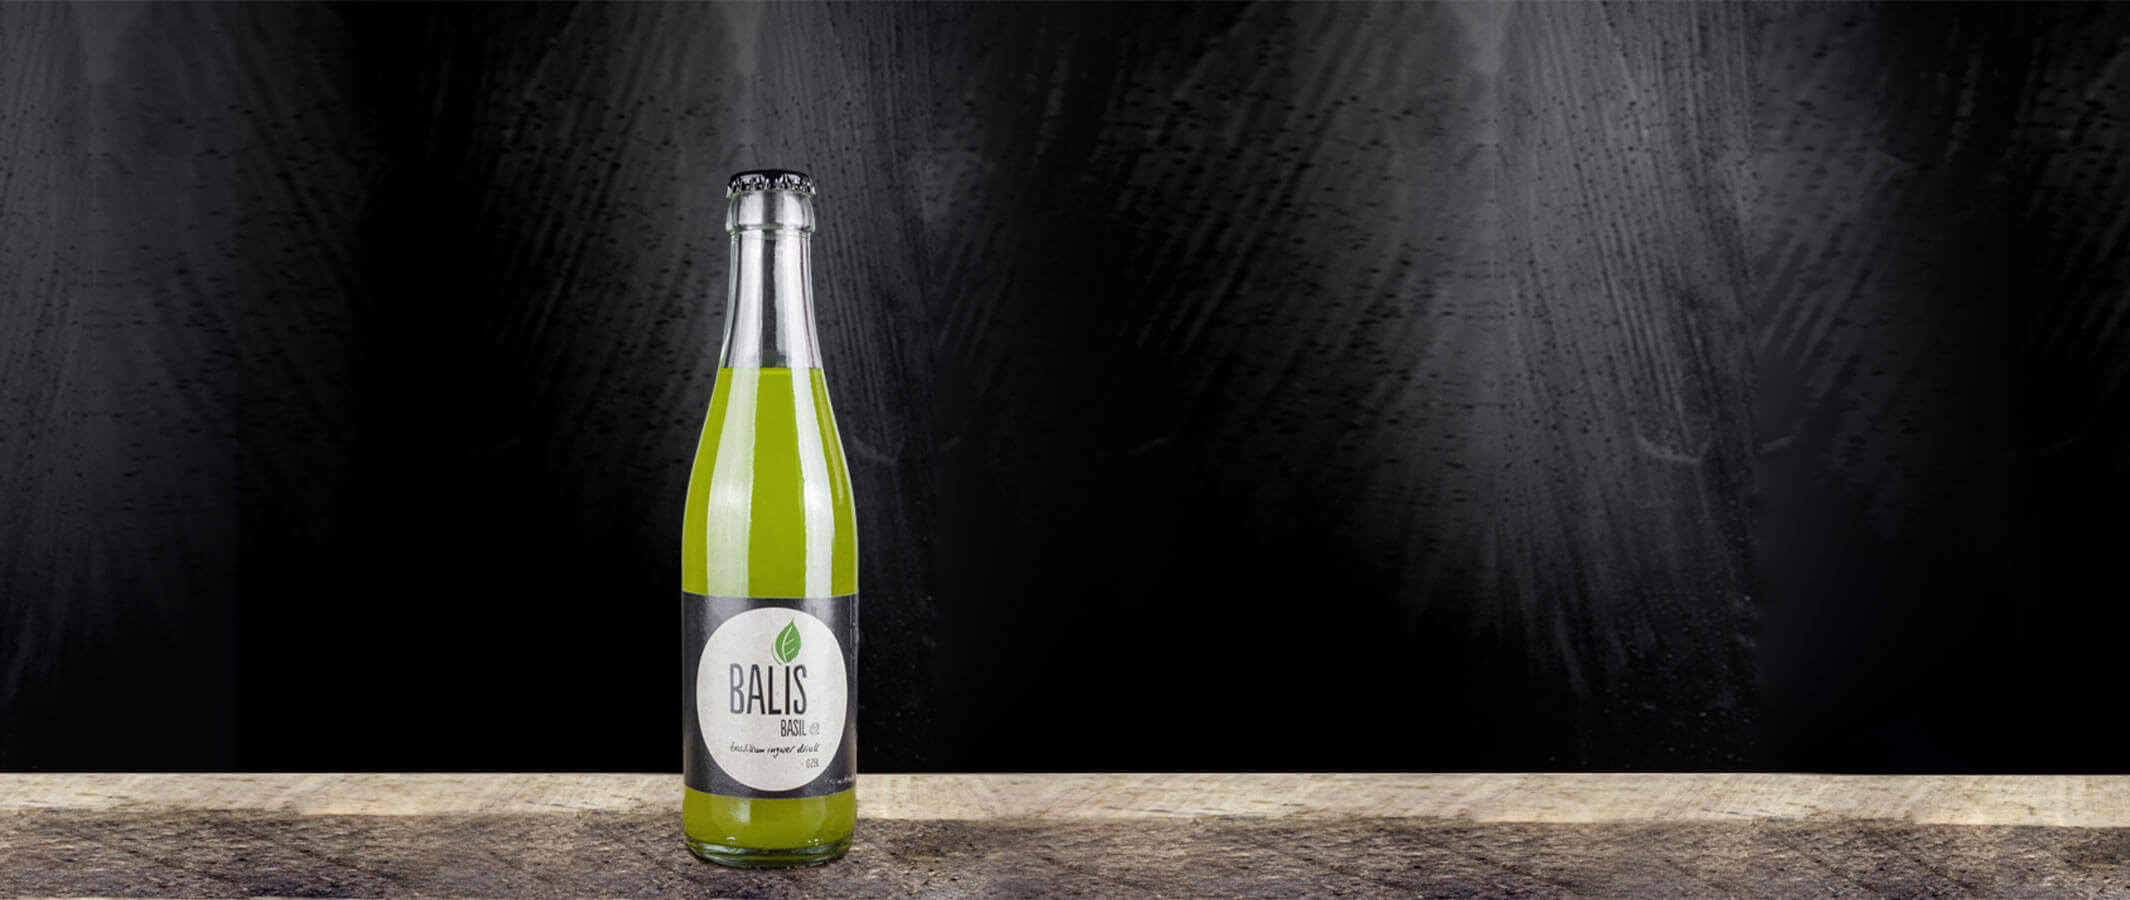 BALIS_Drinks_BALIS_Basil_Index_Ueber_Balis